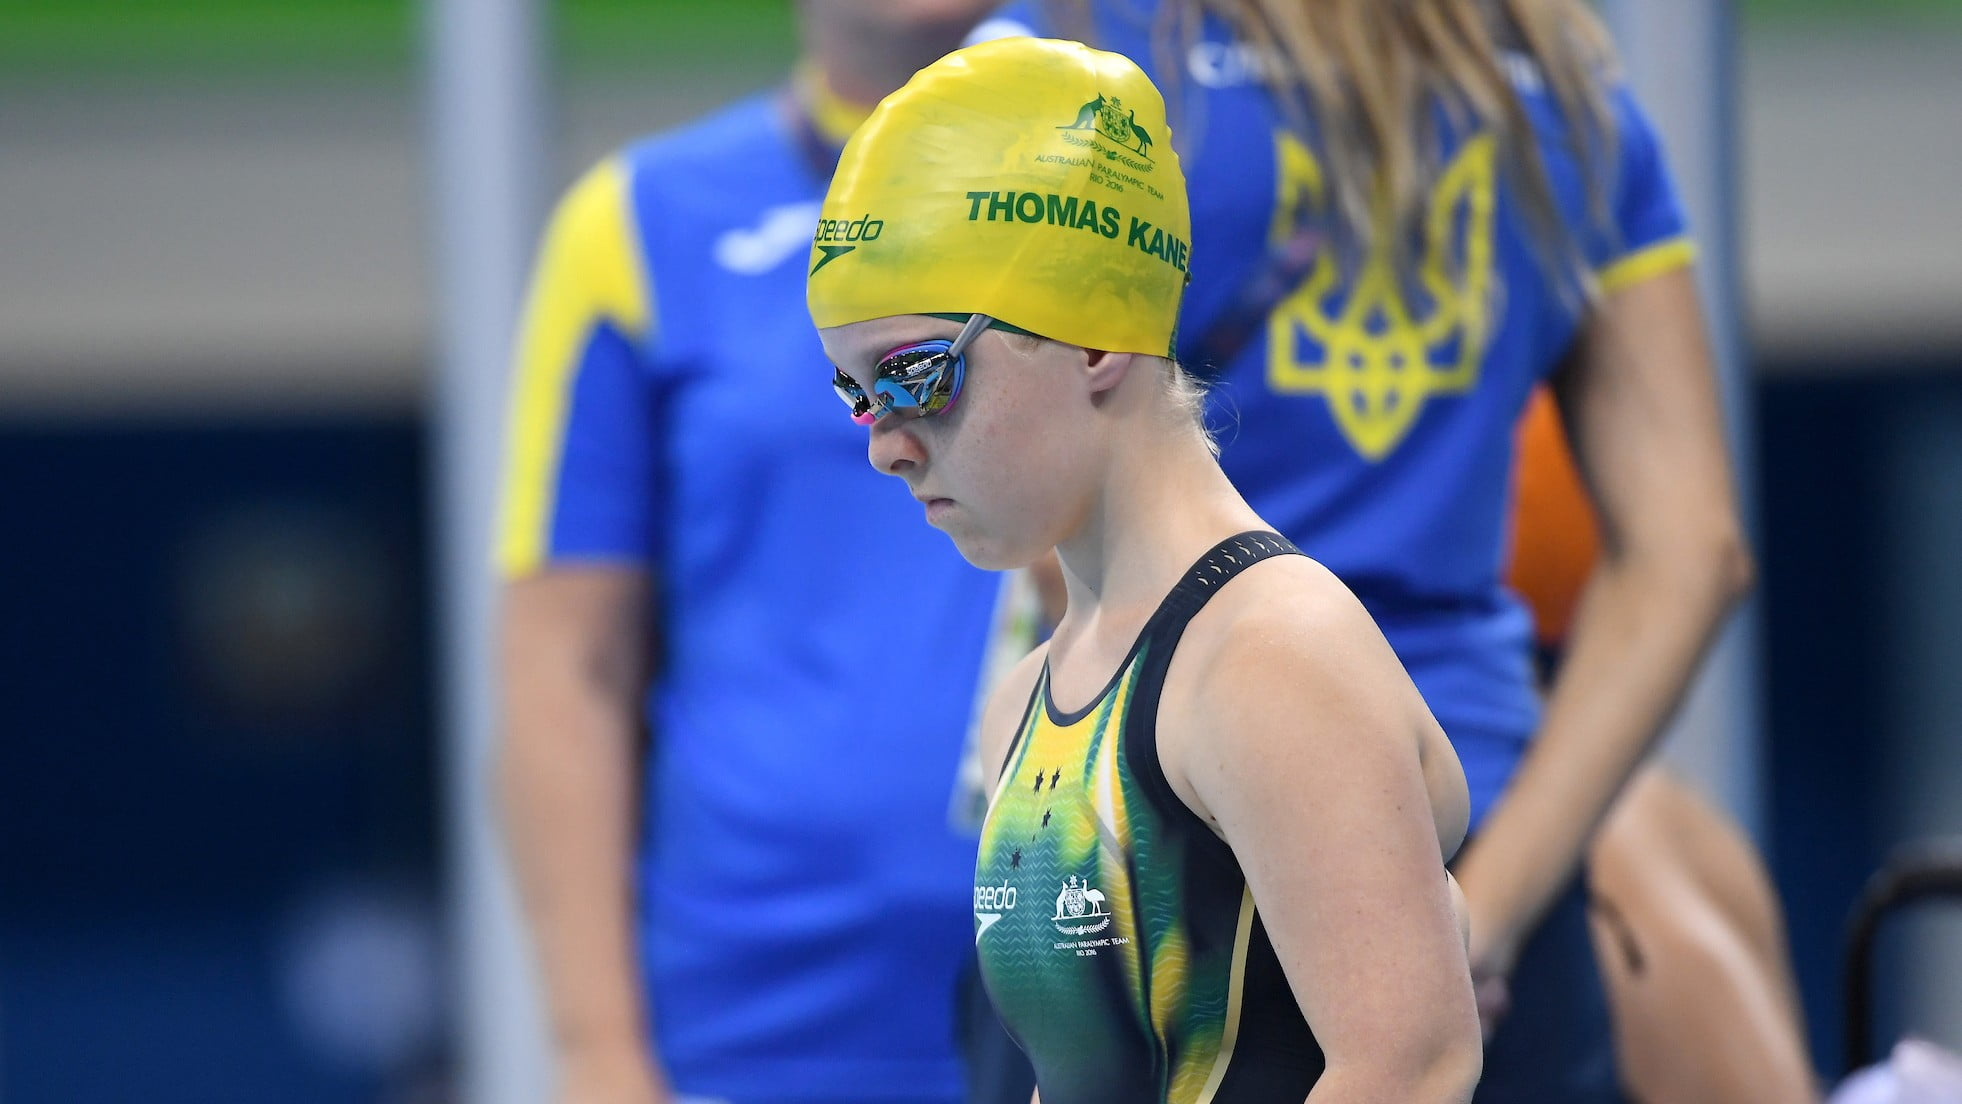 Australia continues its dominance in the pool